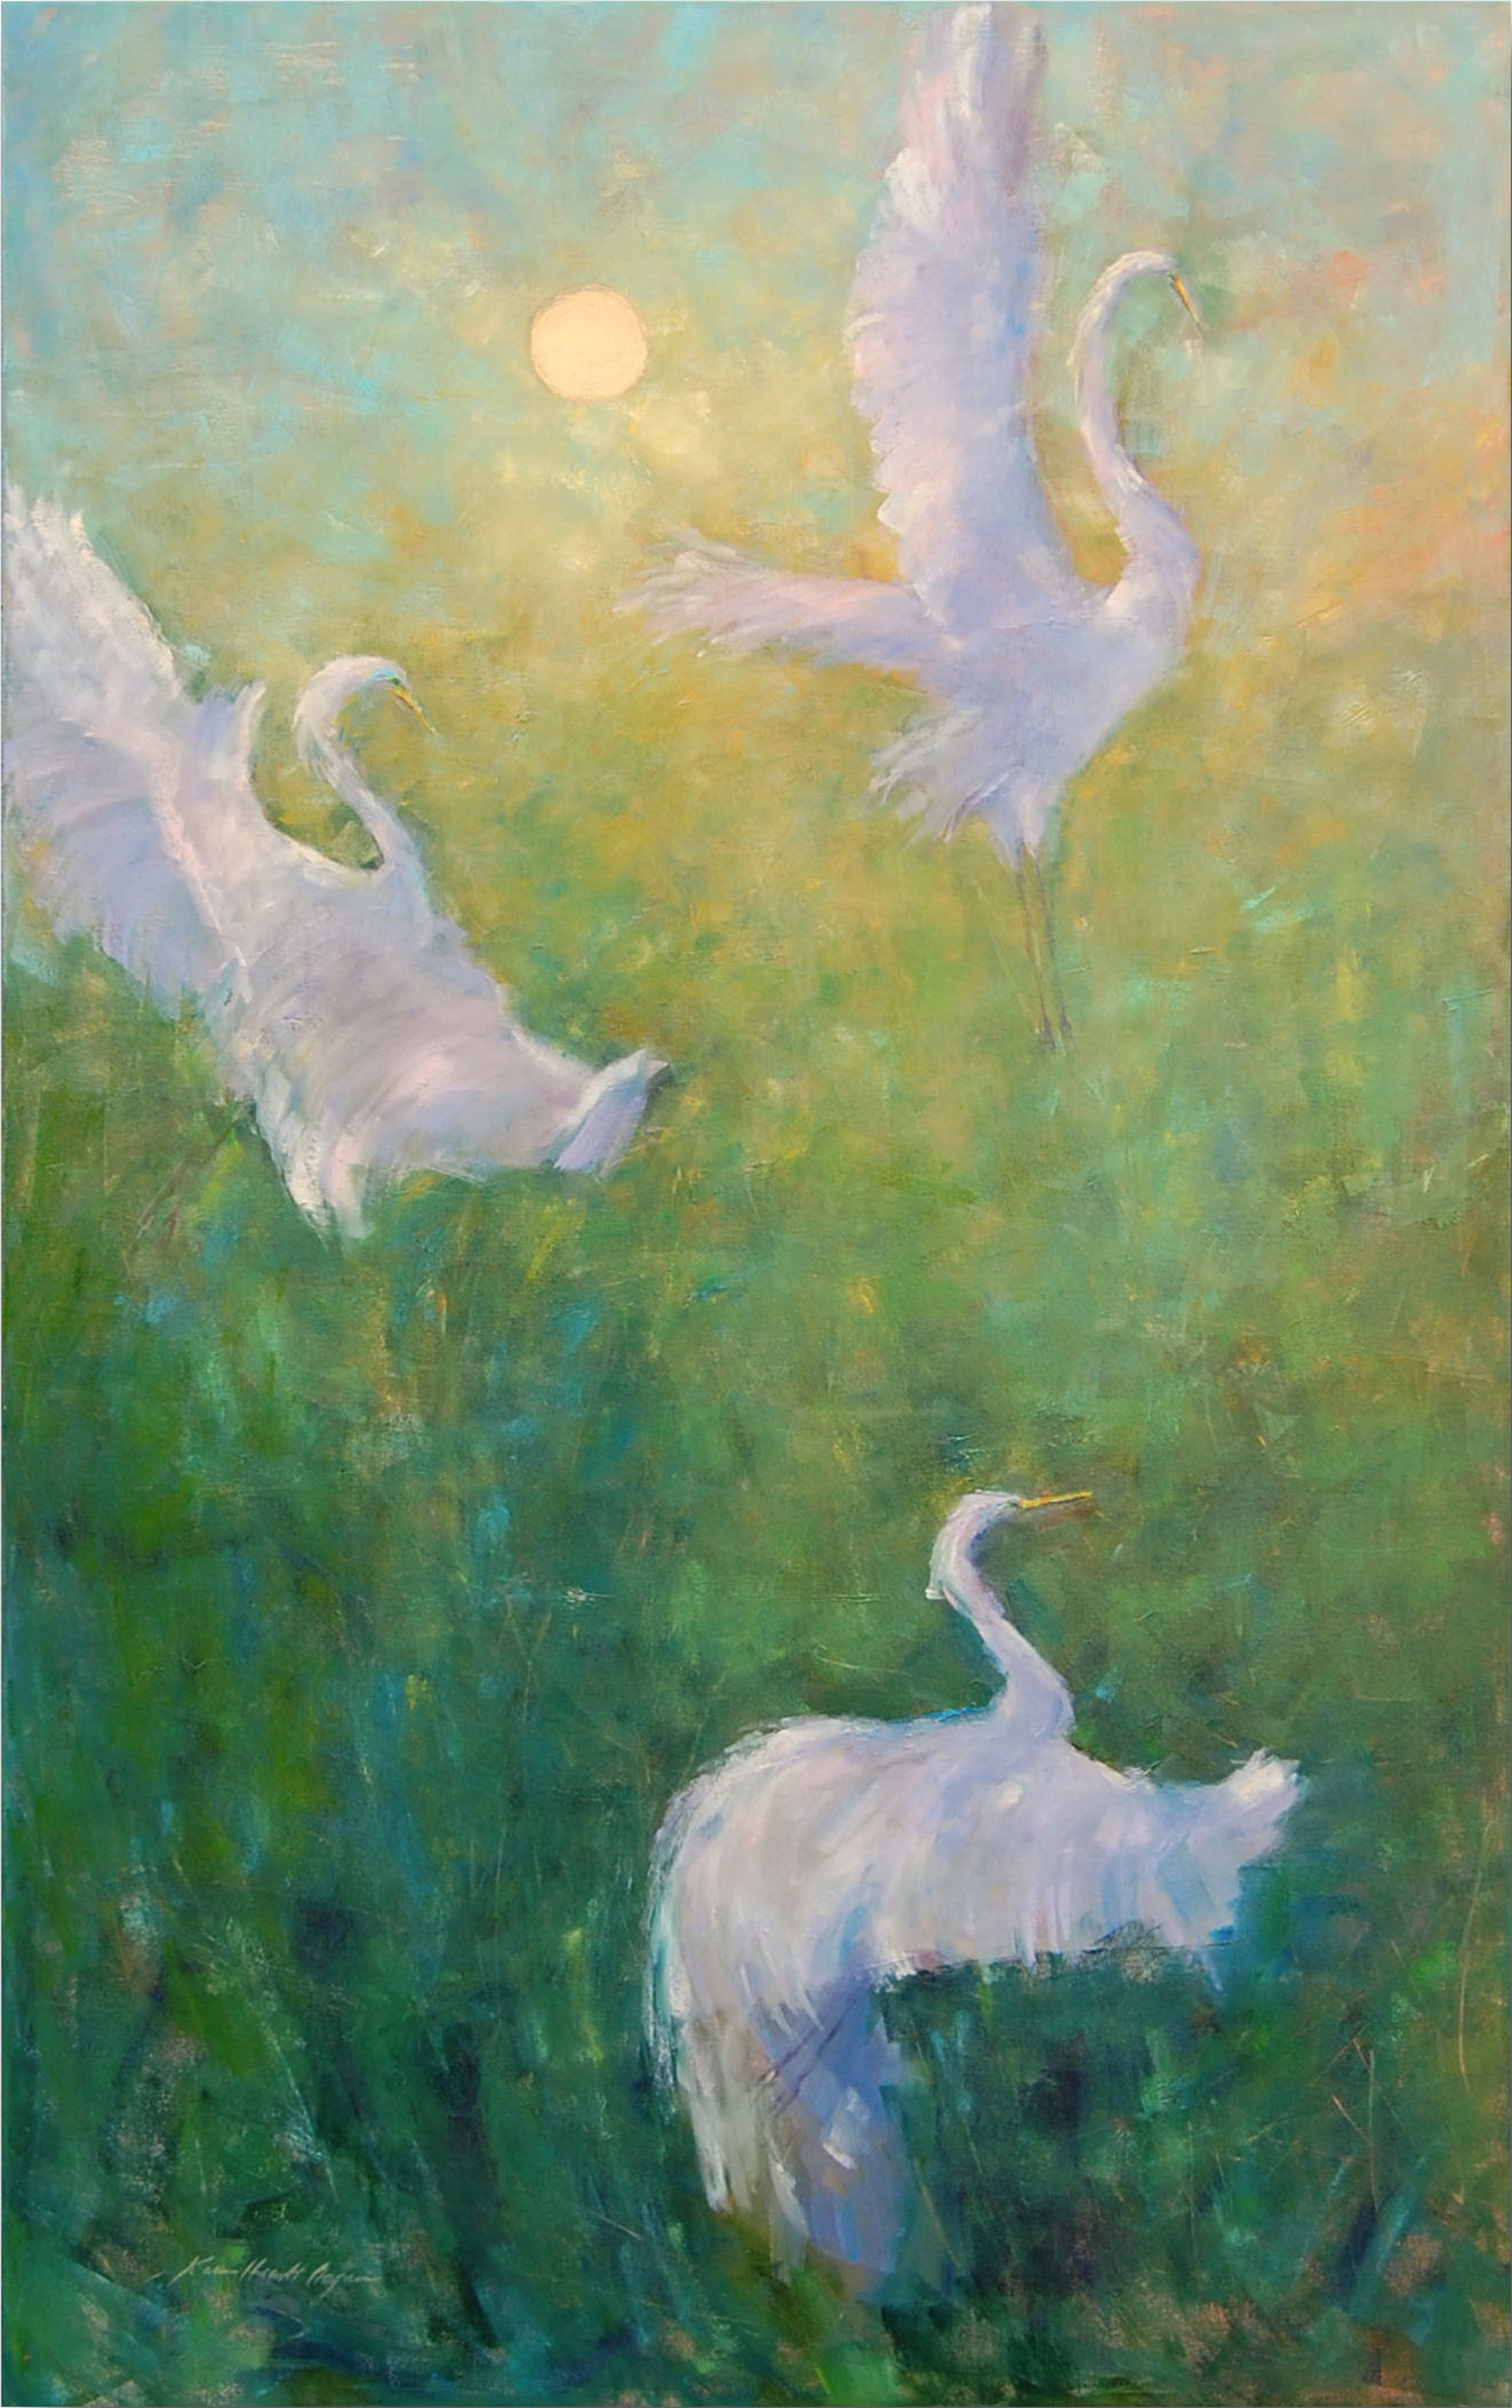 Ascent of the Great Egret I by Karen Hewitt Hagan